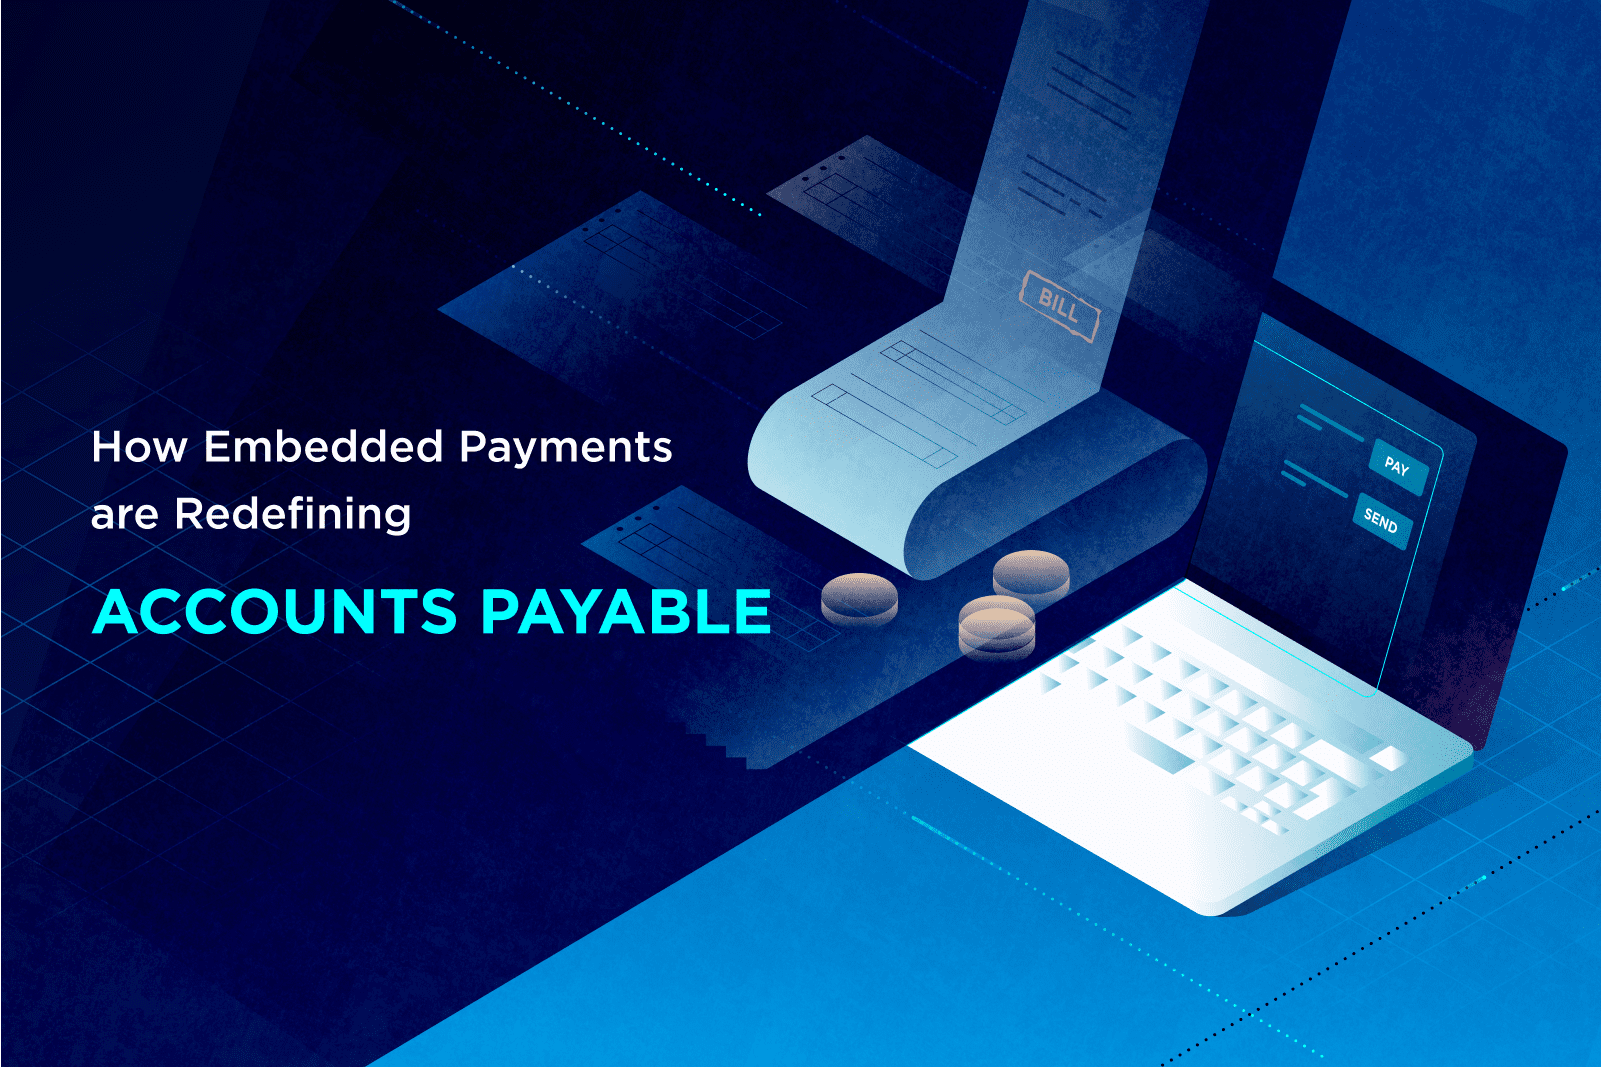 embedded-payments-redefining-accounts-payable